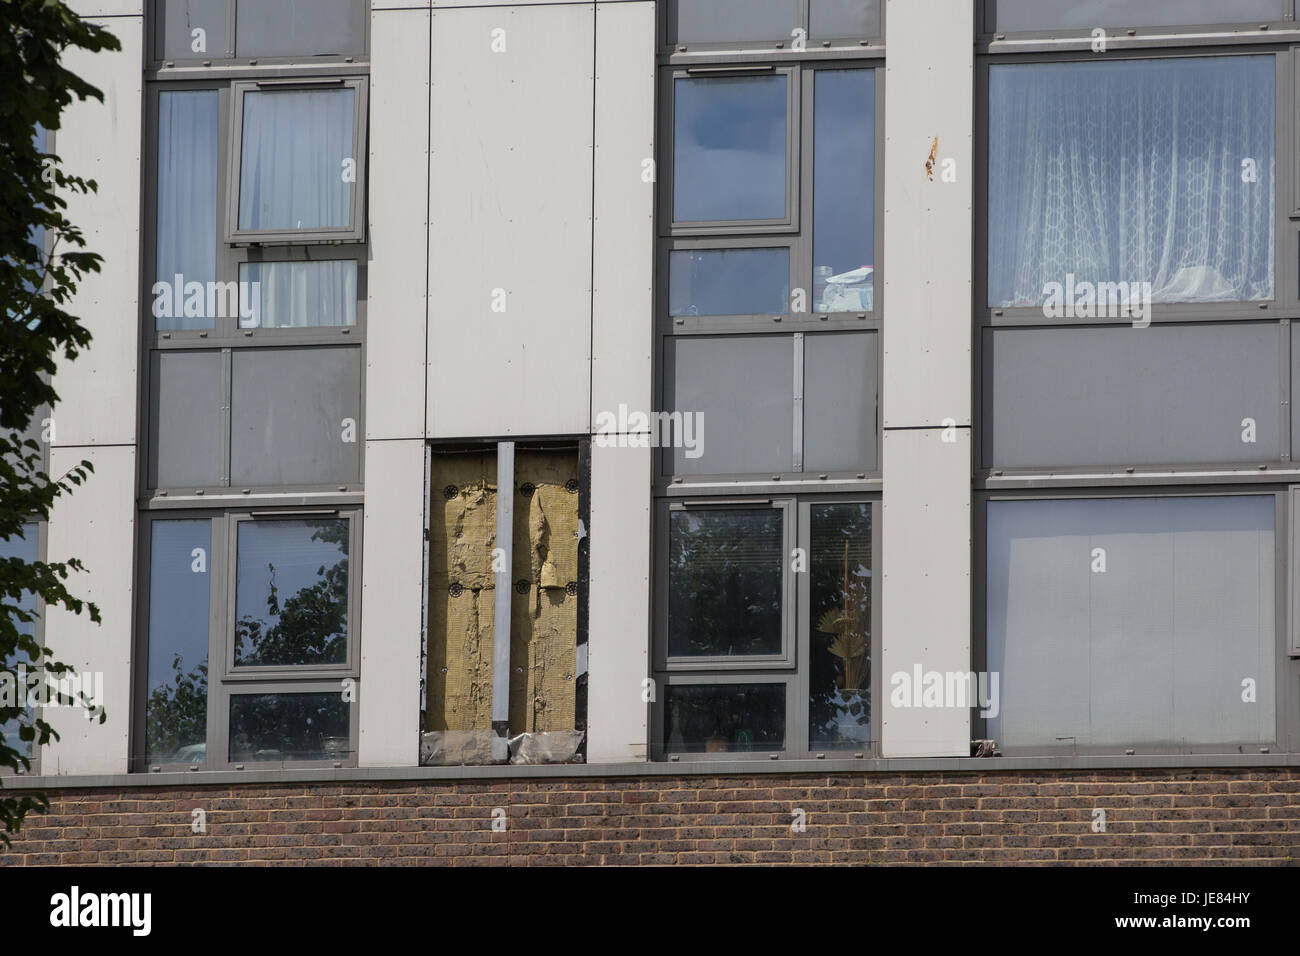 London, UK. 23rd June, 2017. A cladding panel is removed for testing at Dorney Tower on the Chalcots Estate in Camden, - Stock Image